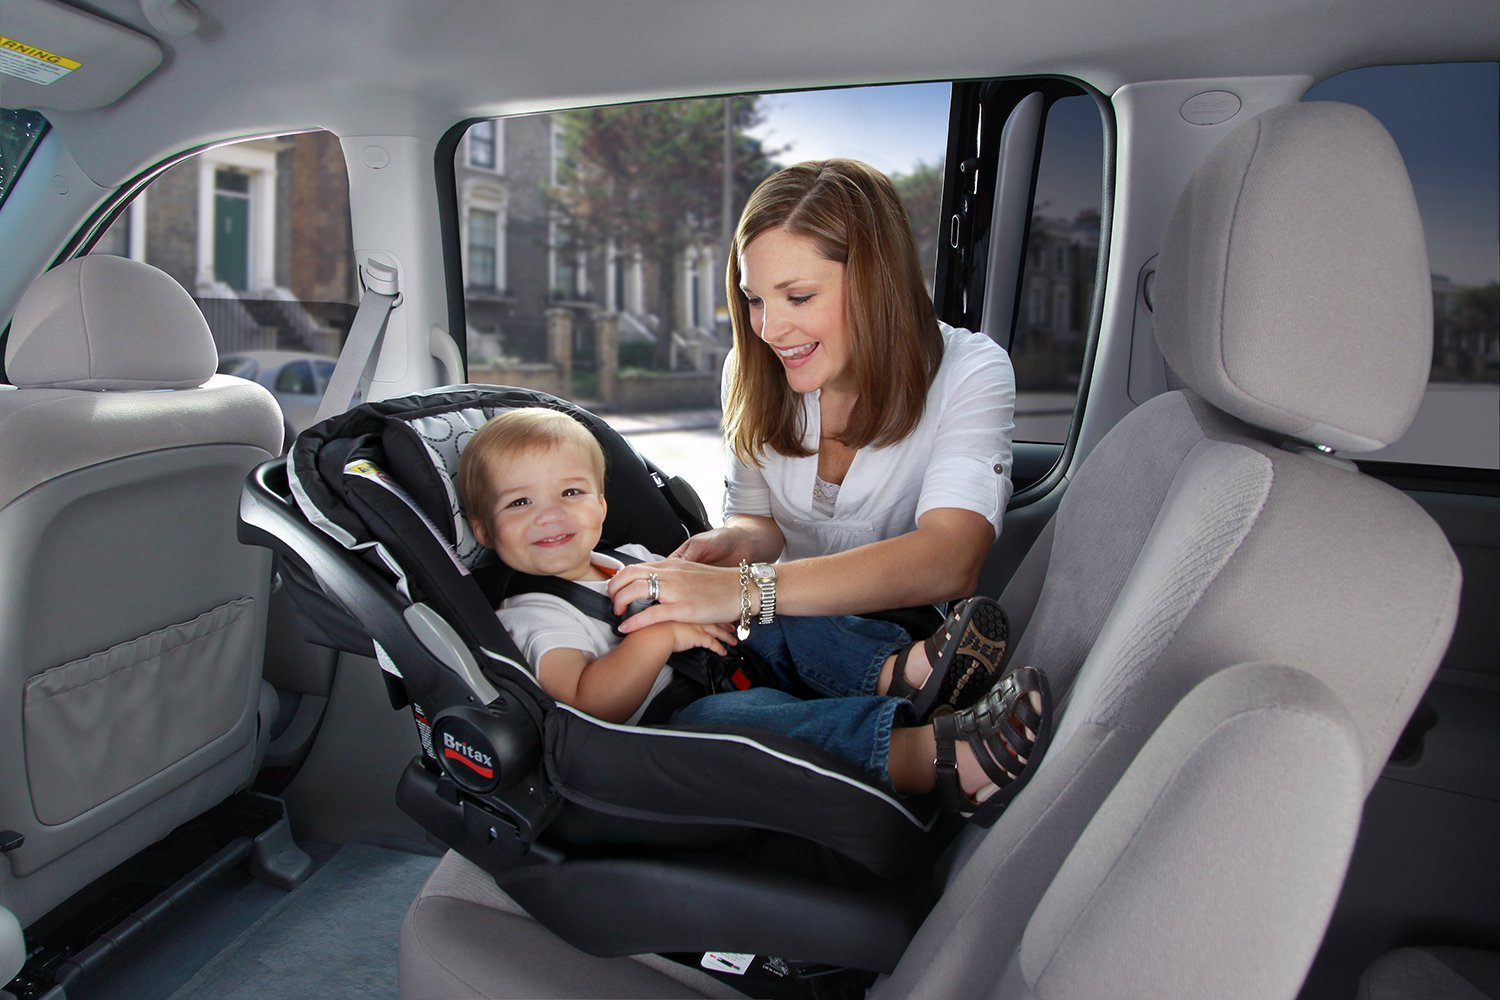 96cc12eca How to choose a baby car seat - reviewsletter.net - All You Wanna Know